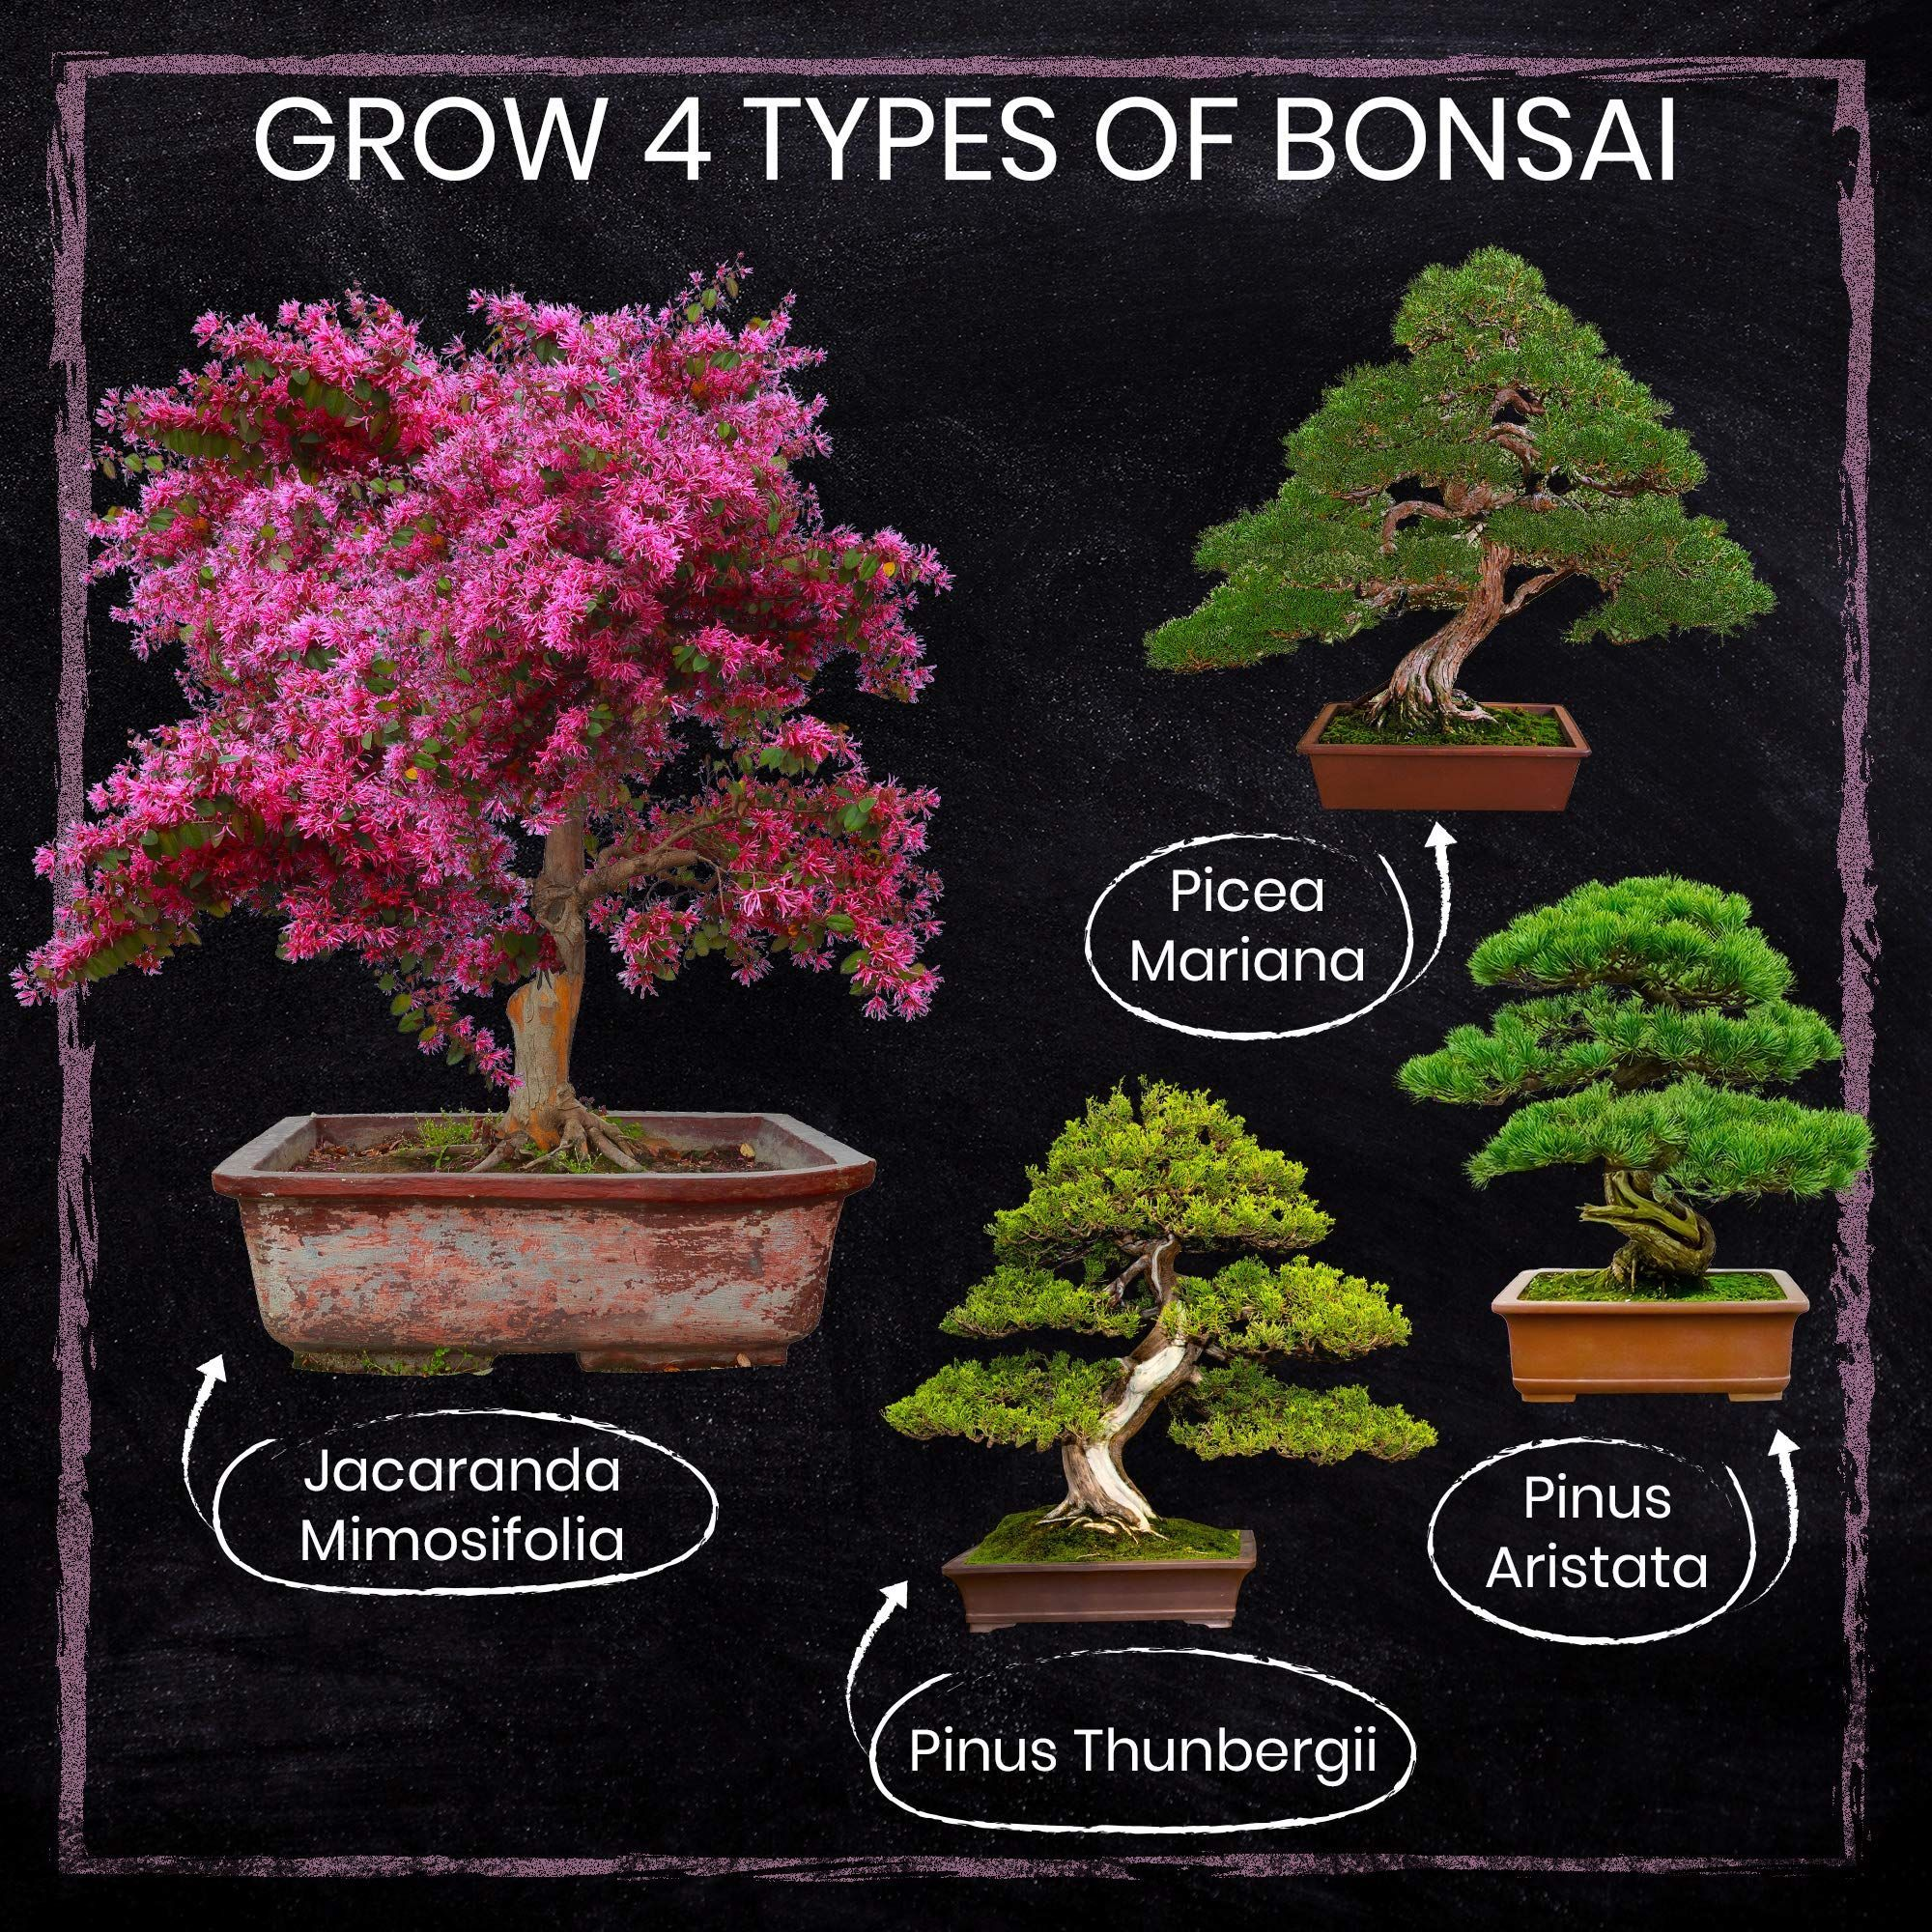 Nature S Blossom Bonsai Tree Seed Starter Kit For Beginner Gardeners A Complete Indoor Growing Set Special Garden Gift Idea For Men And Women In 2020 Tree Seeds Seed Starter Kit Gardening